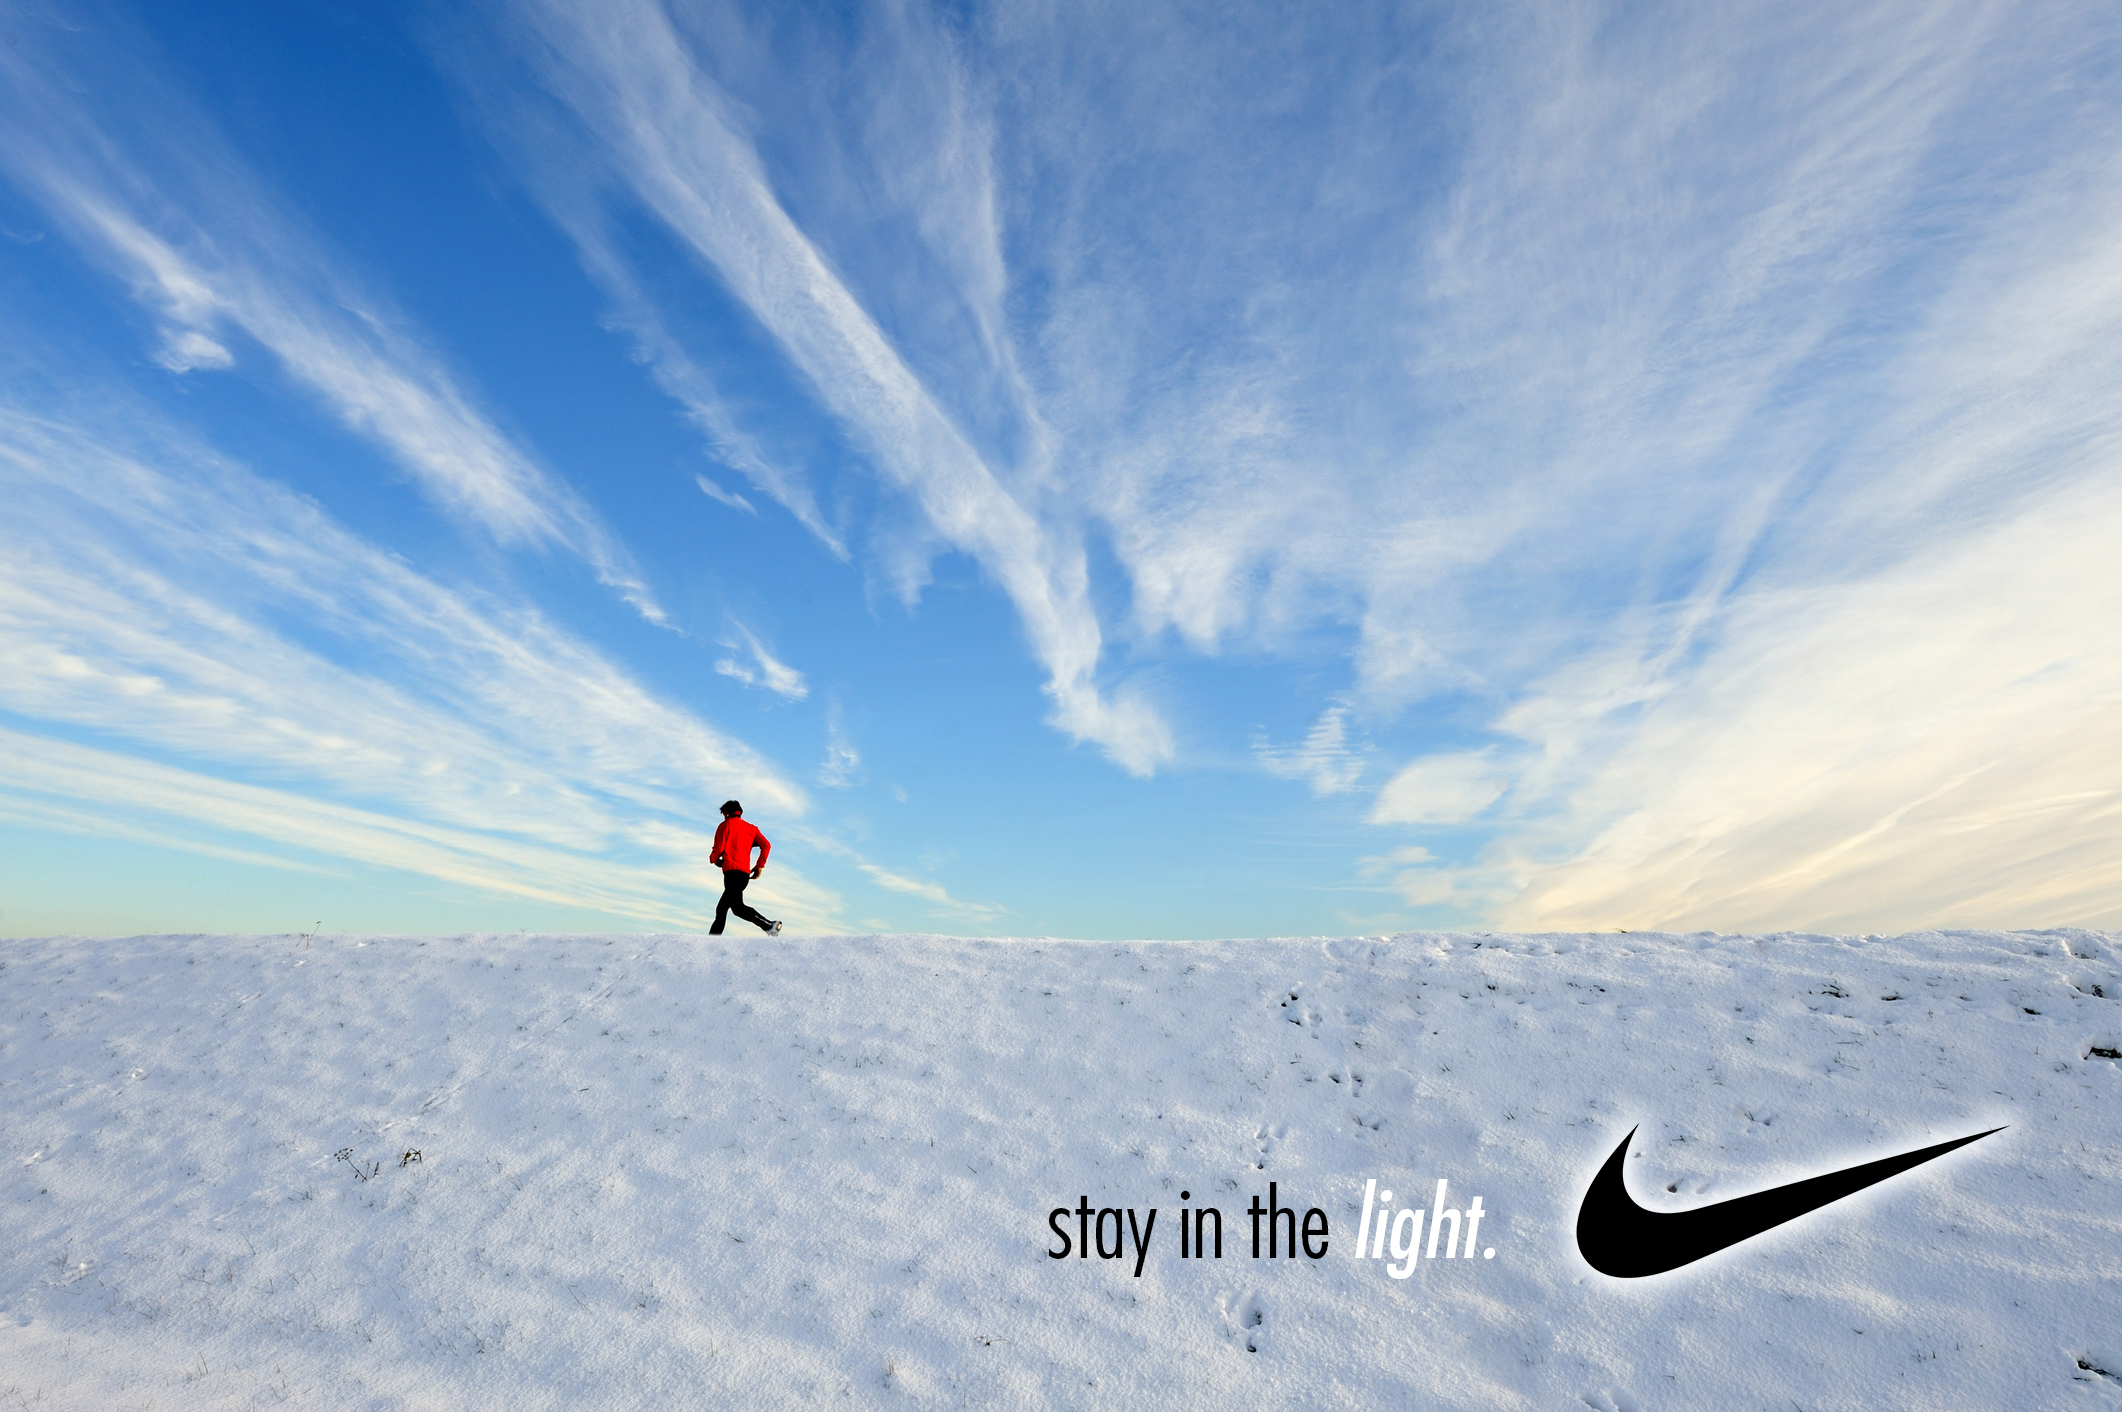 mel blanchard gong ad   nike_campaign_snow_swoosh.jpg